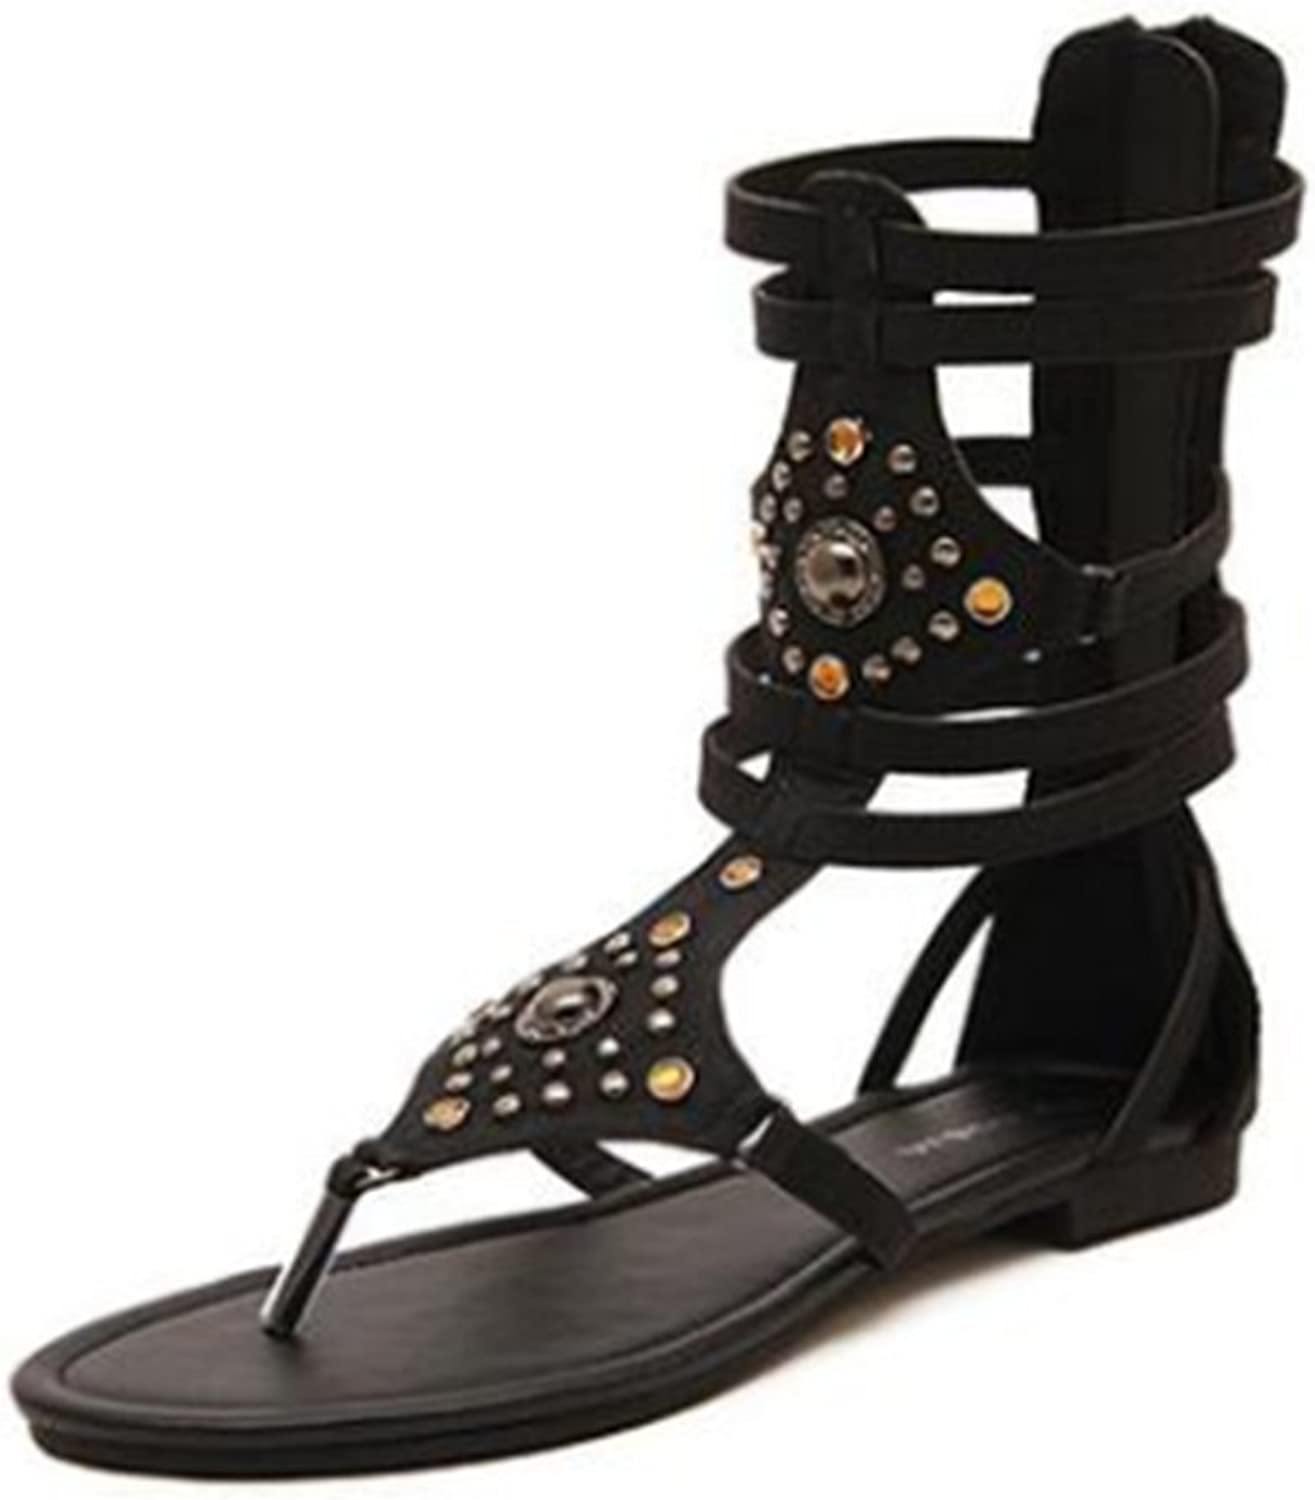 Edv0d2v266 High Heels Gladiator Spiked Sandals Boots Strapless Party shoes Women Peep Toe Pumps Women shoes